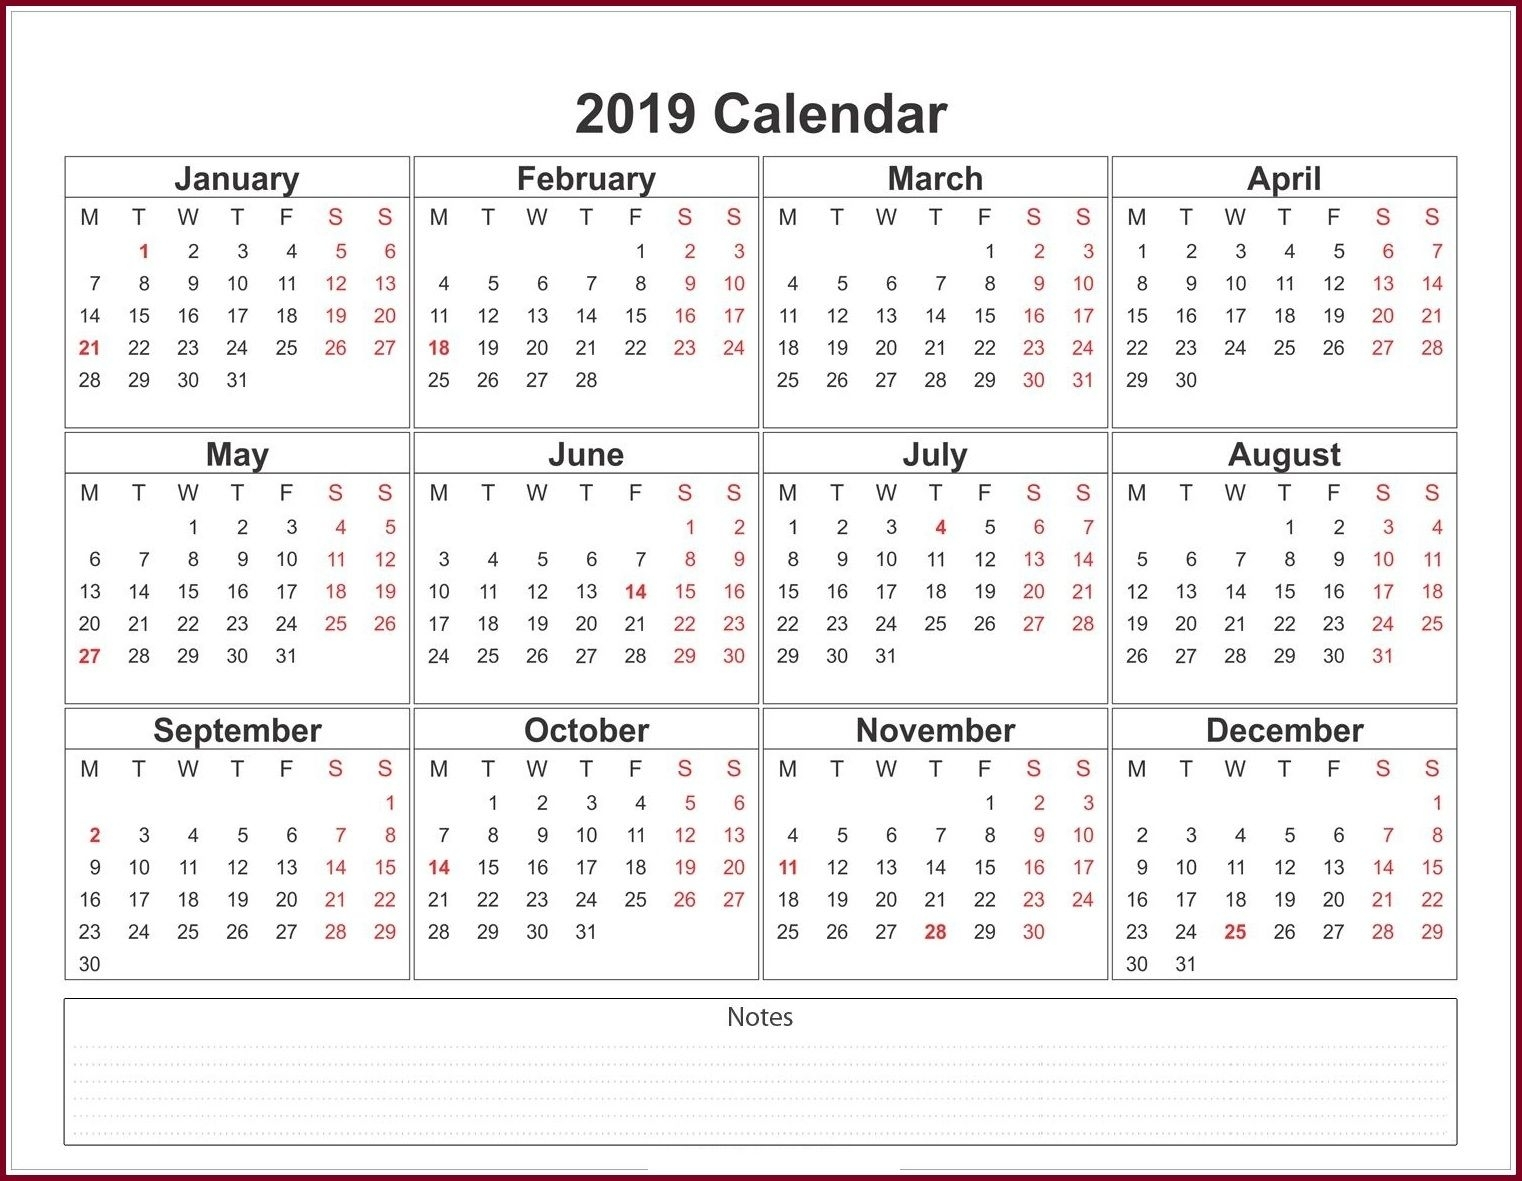 Calendar 2019 Template Word | 2019 Calendar Template In One Pages with regard to Combined Monthly And Weekly Calendar Template Word